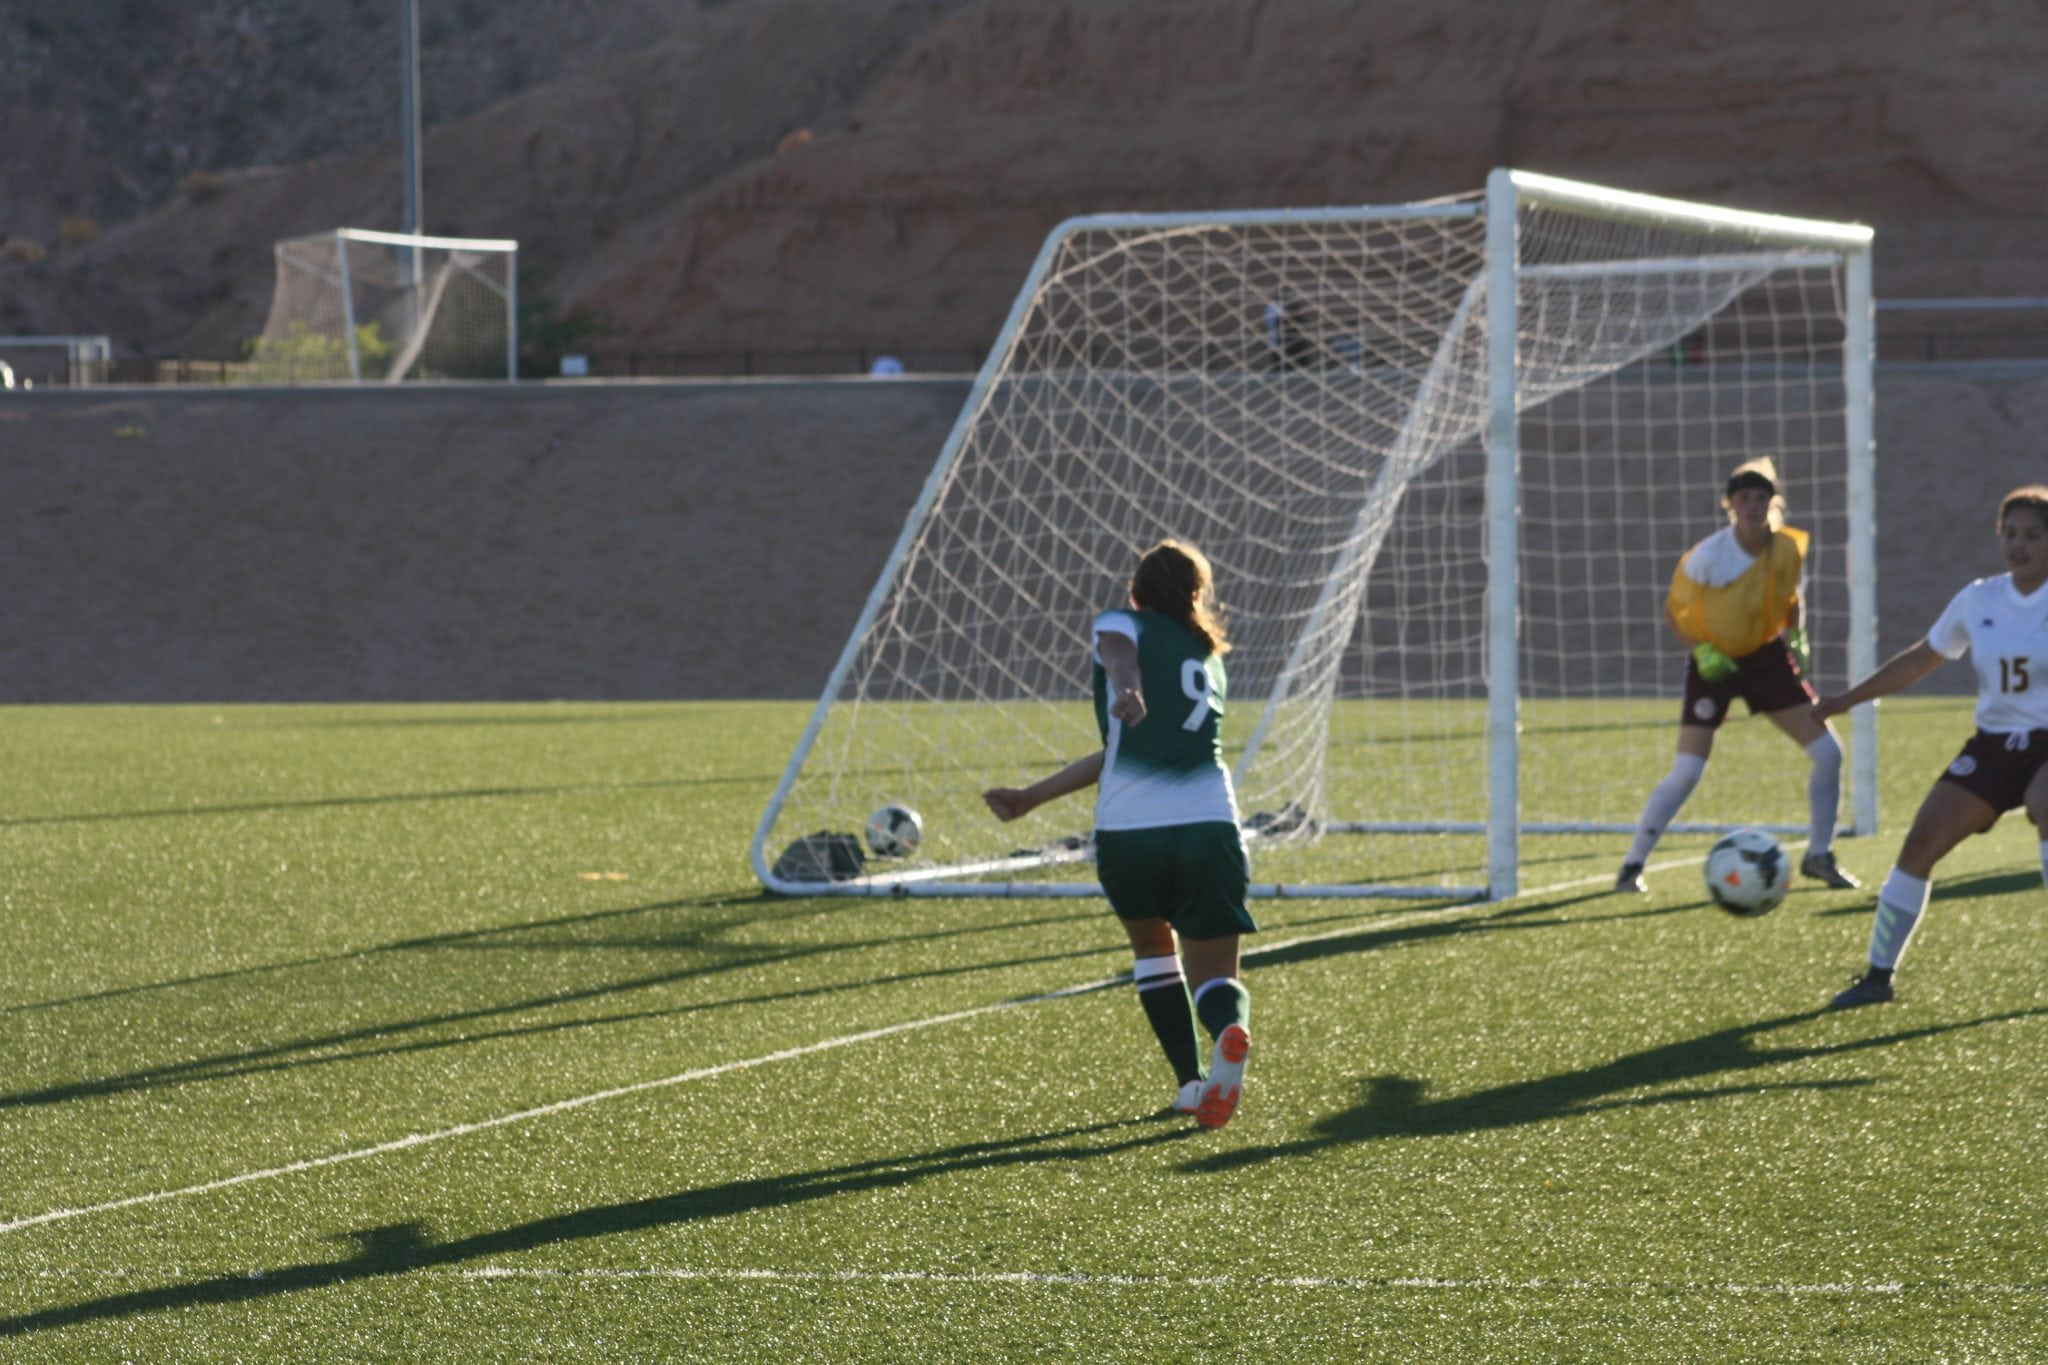 Lady Bulldogs open season with win over Trojans